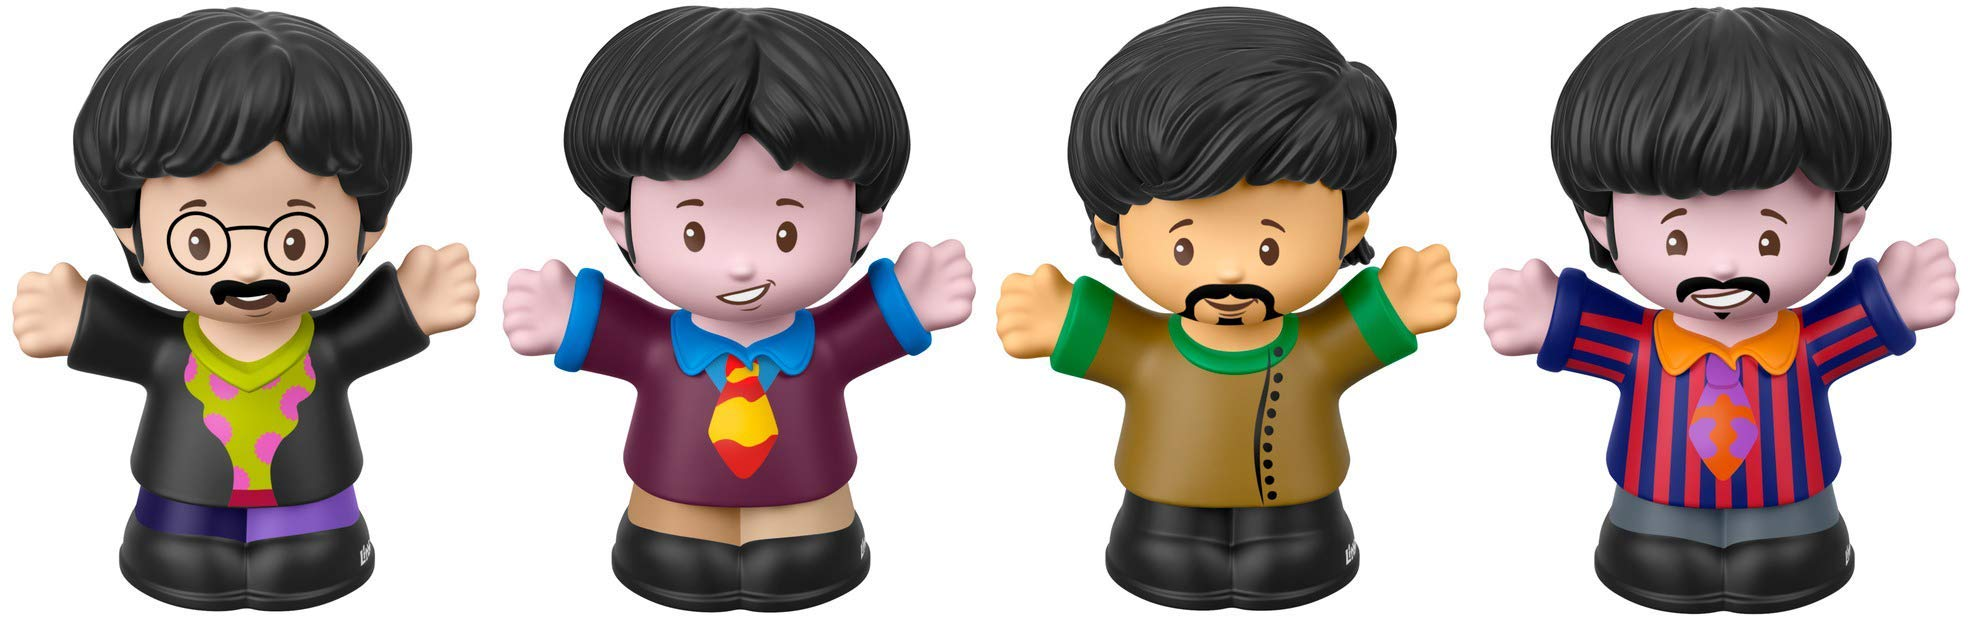 Fisher-Price The Beatles Yellow Submarine by Little People (Renewed)